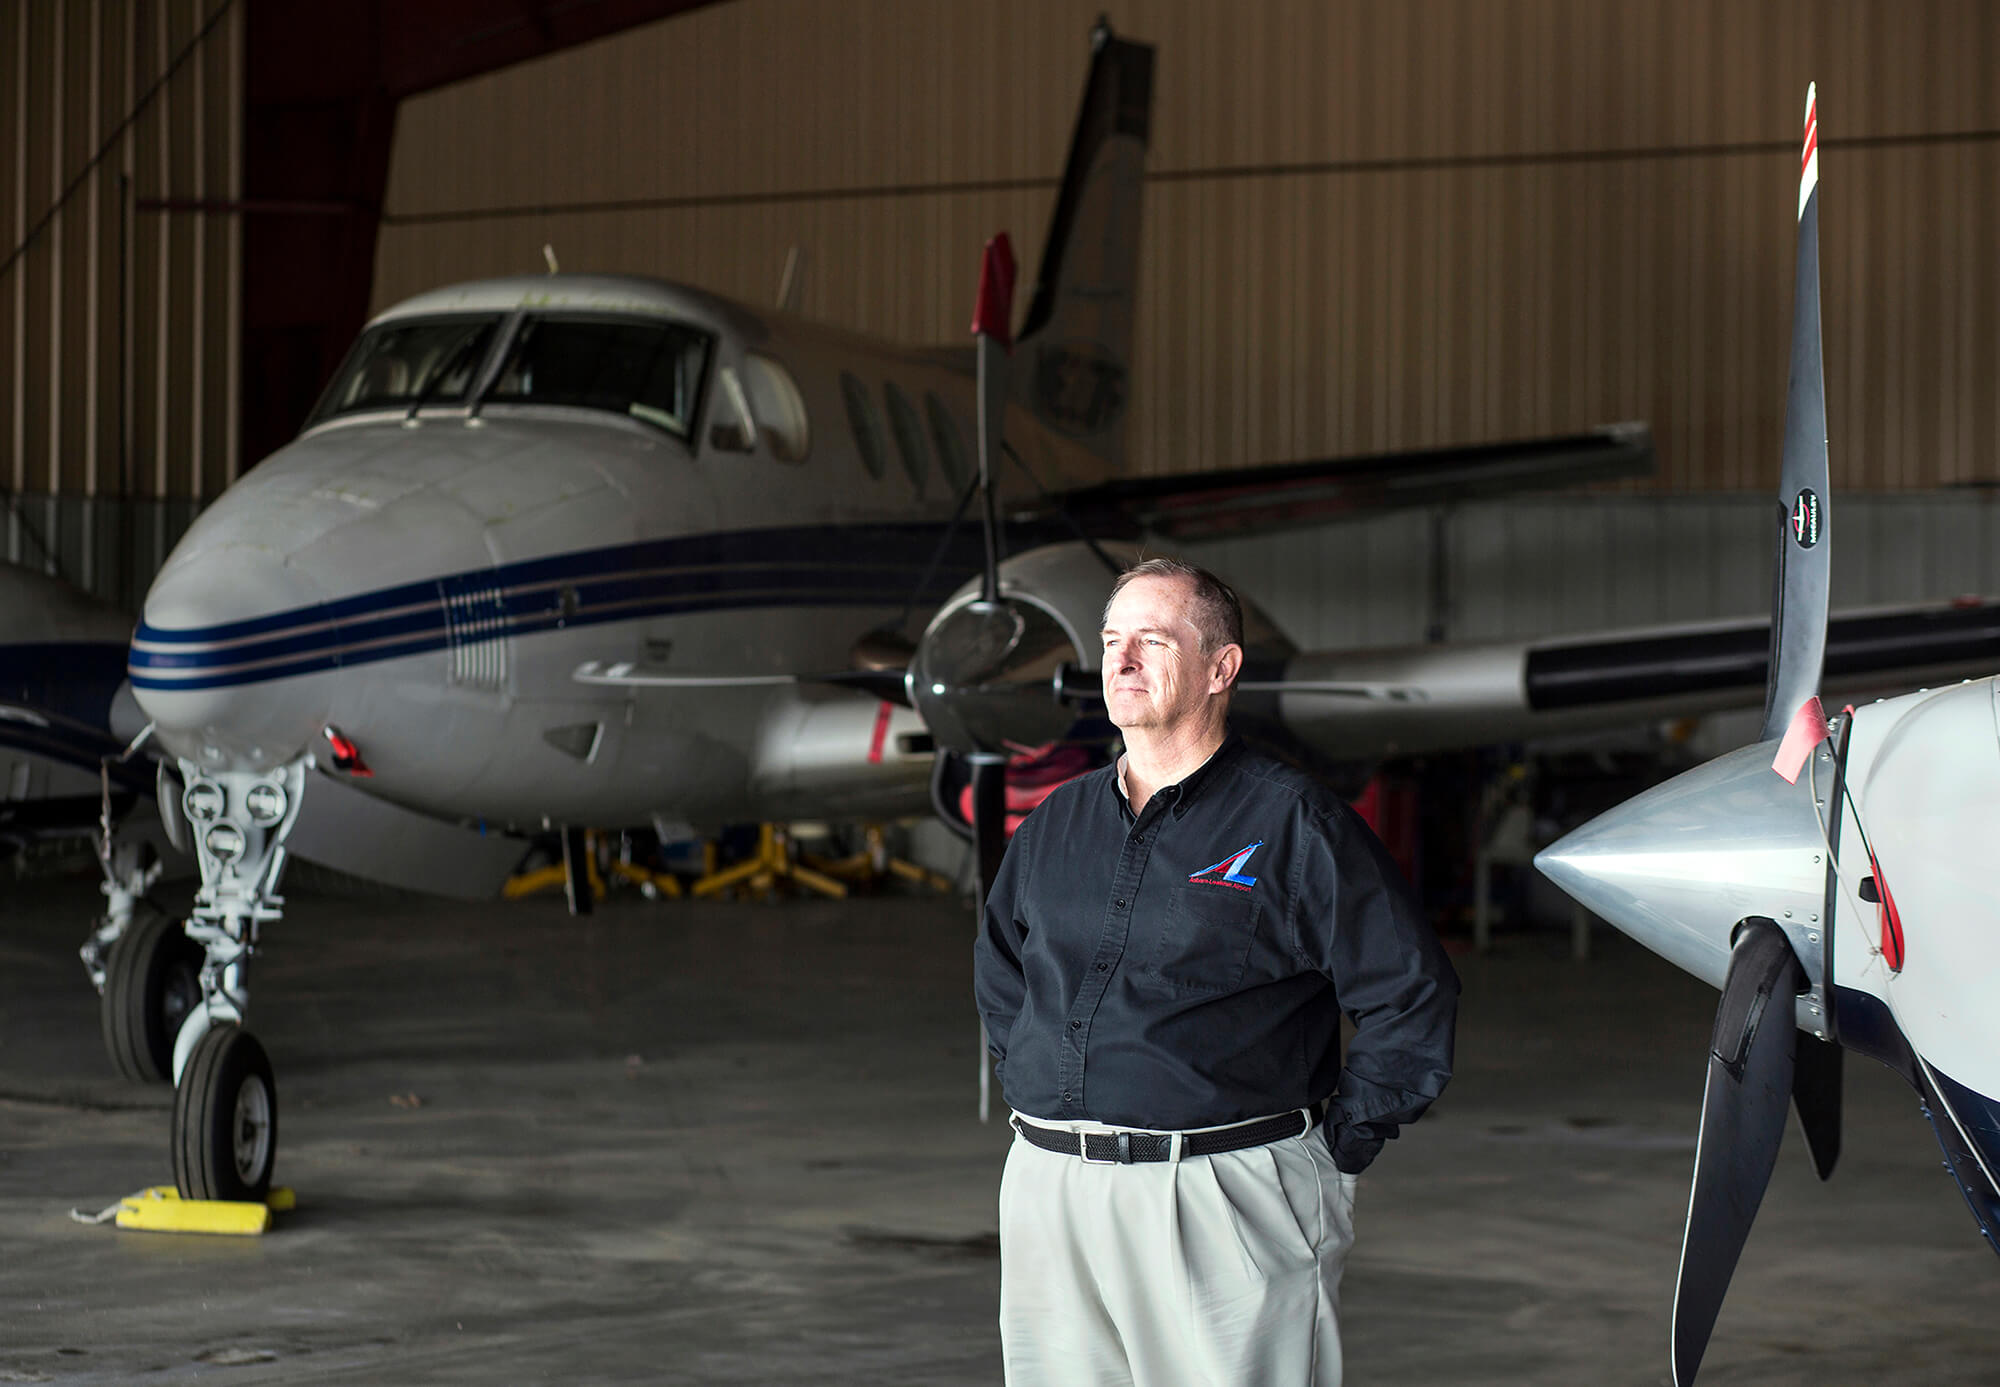 Portrait photography of Auburn-Lewiston Airport Director Rick Lanman in one of their hangars in Auburn Maine